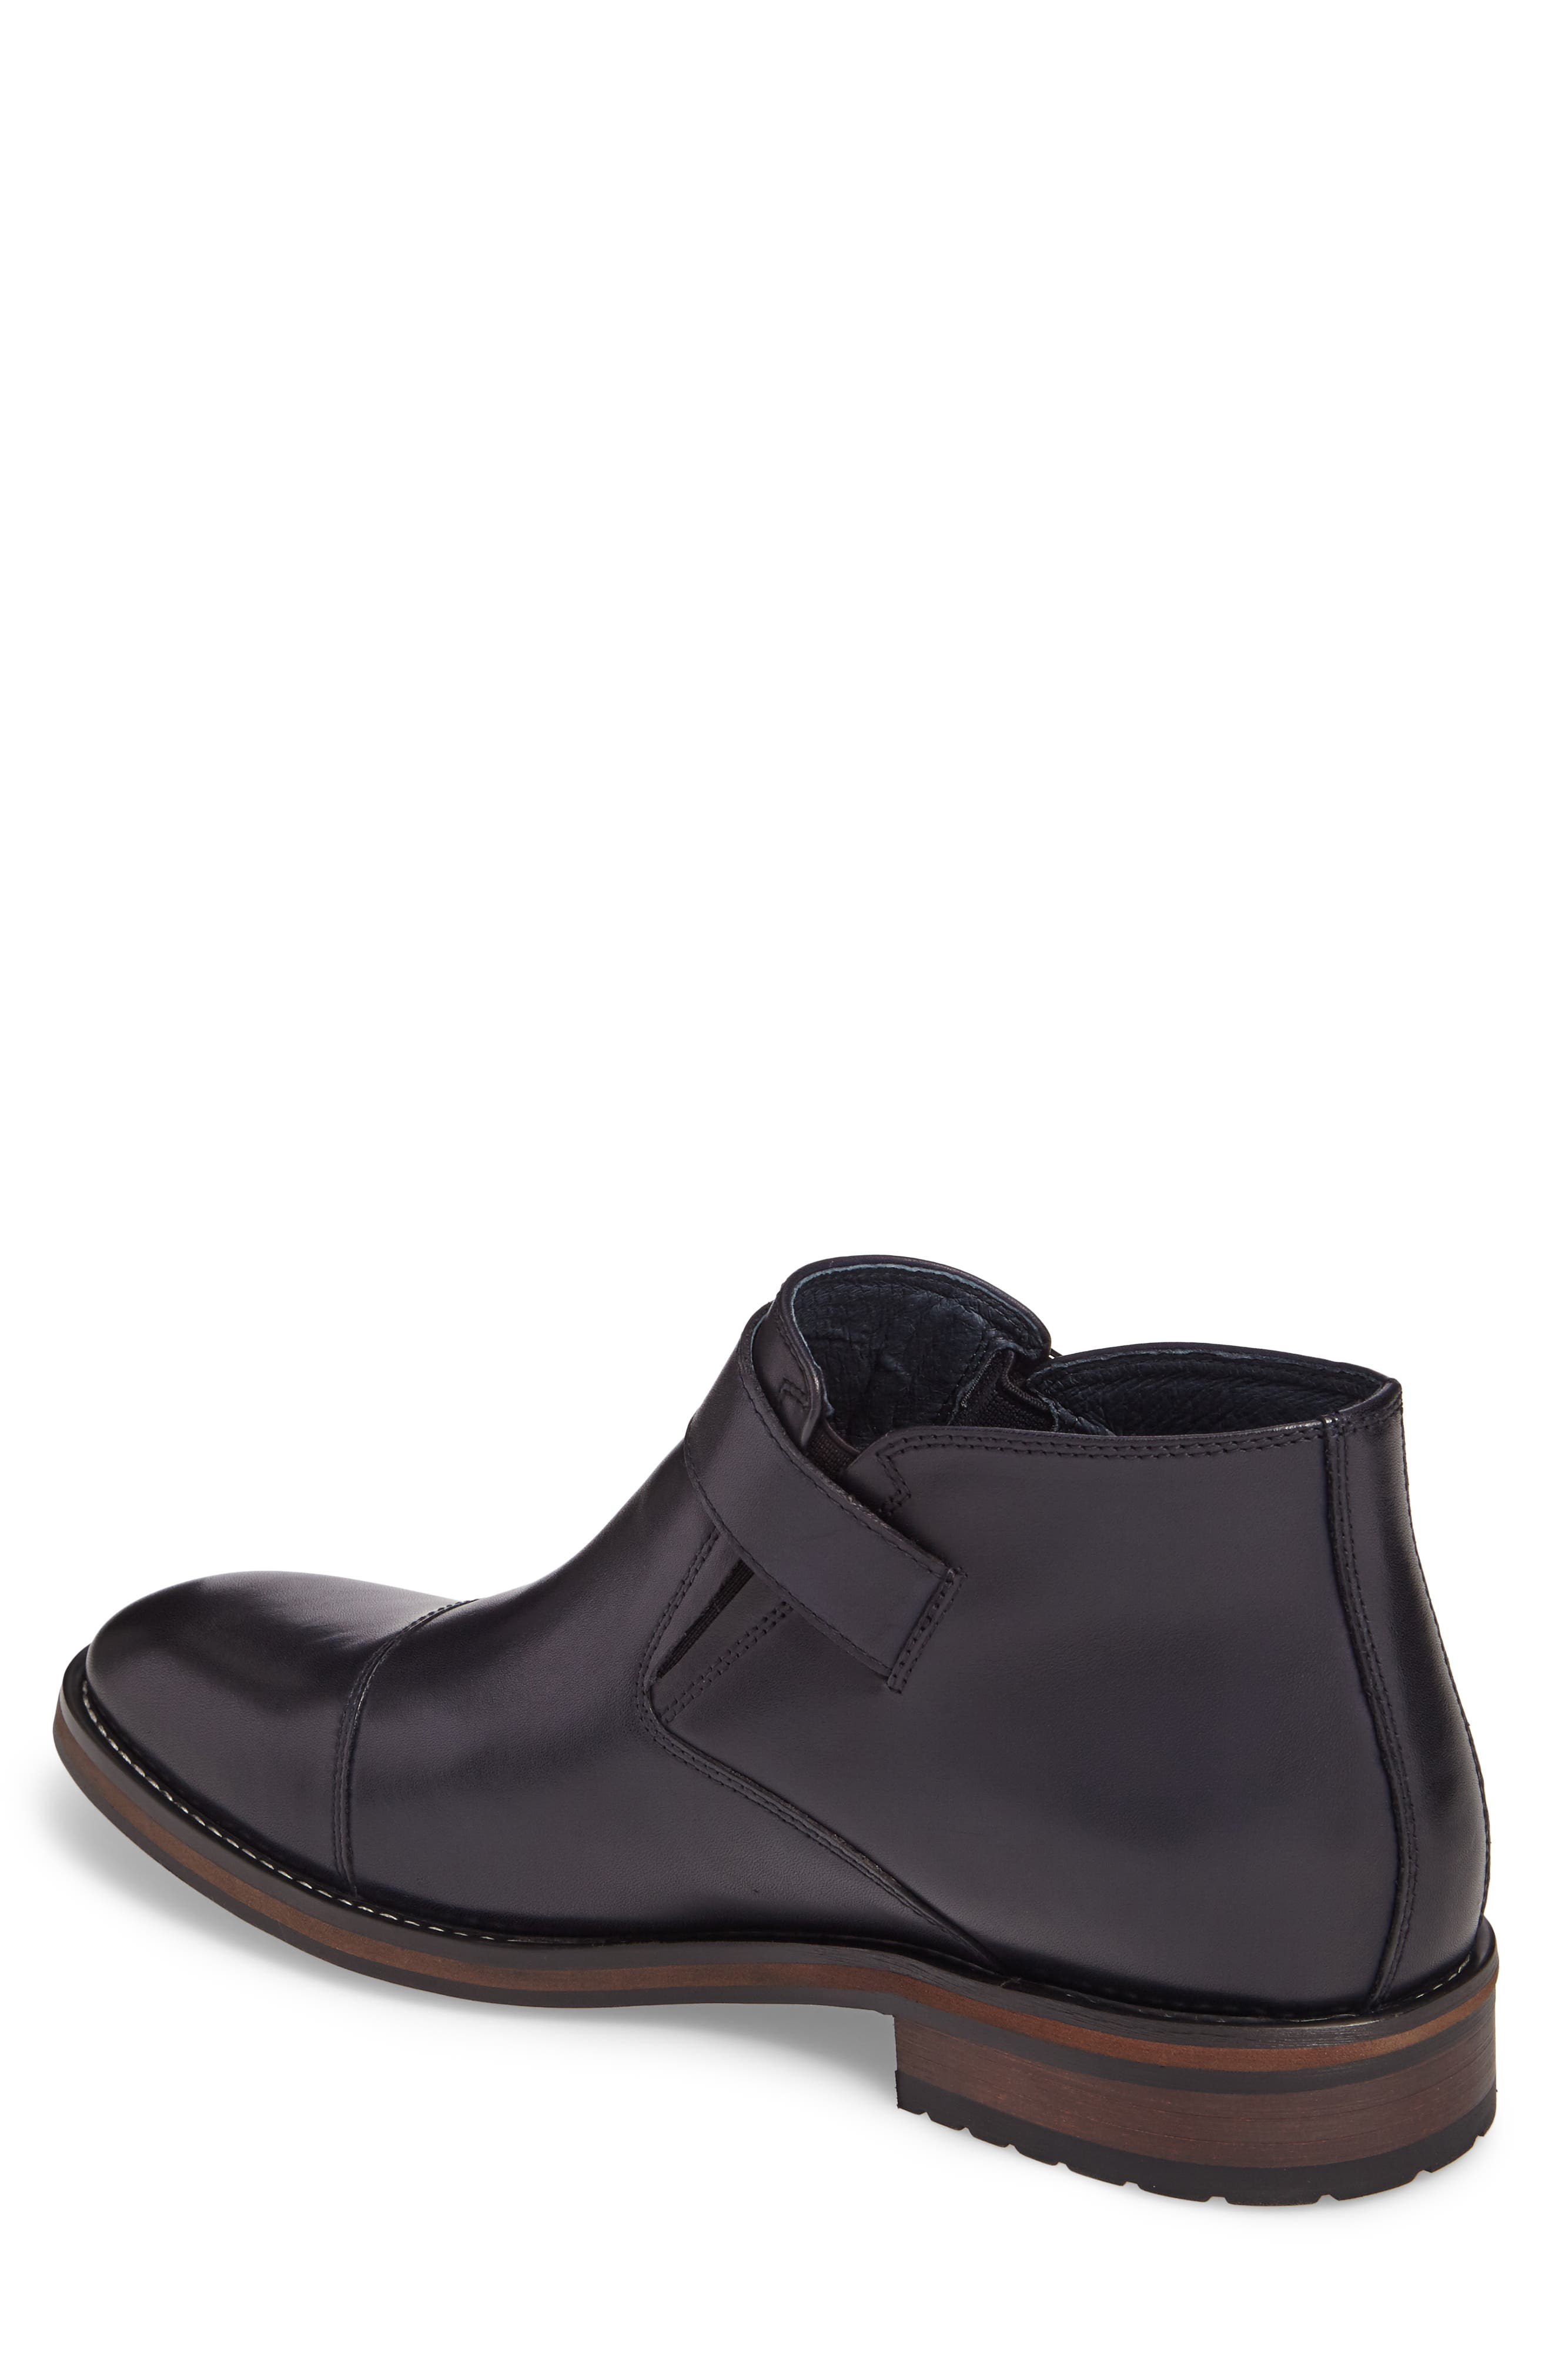 Alternate Image 2  - Zanzara Lami Monk Strap Boot (Men)